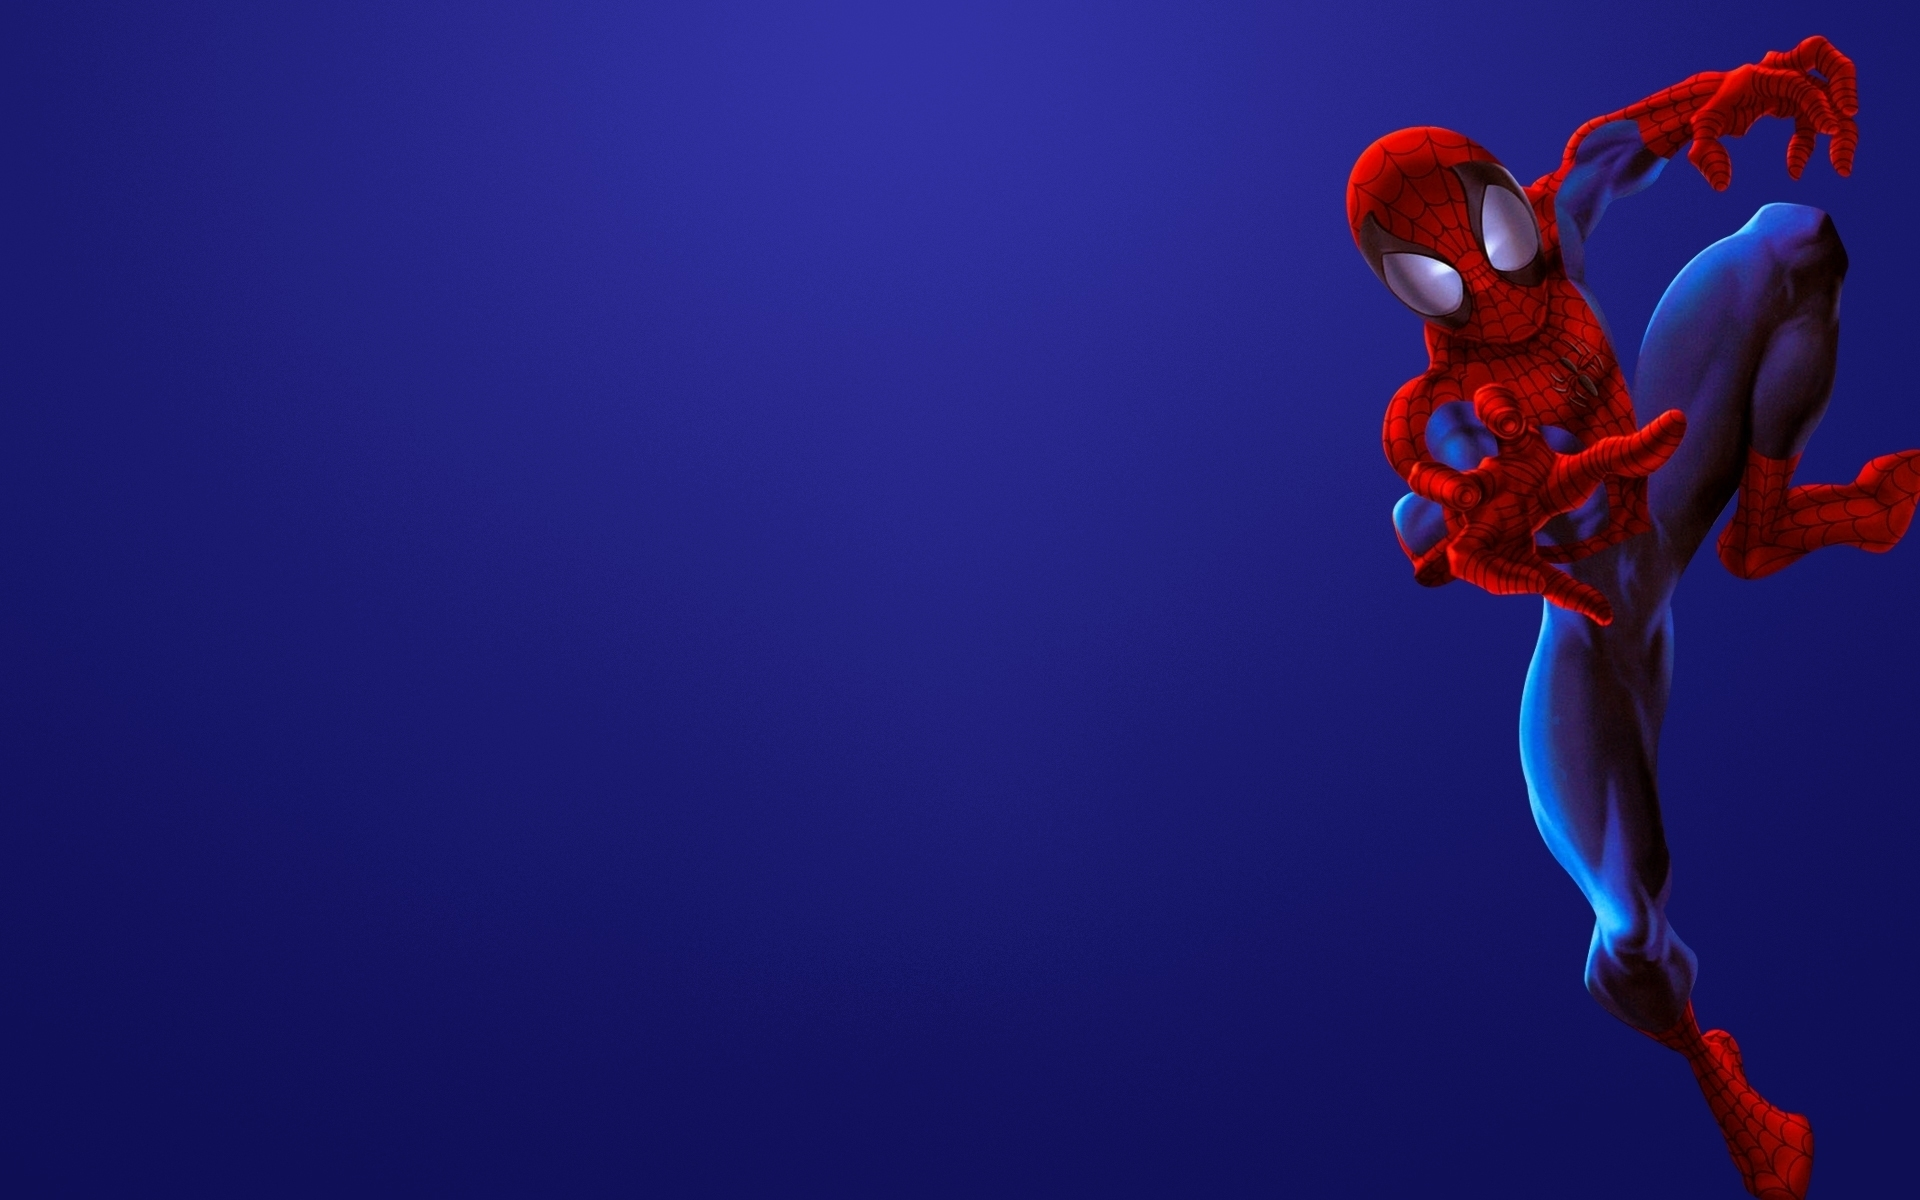 Spiderman background hd wallpaper - Images spiderman ...